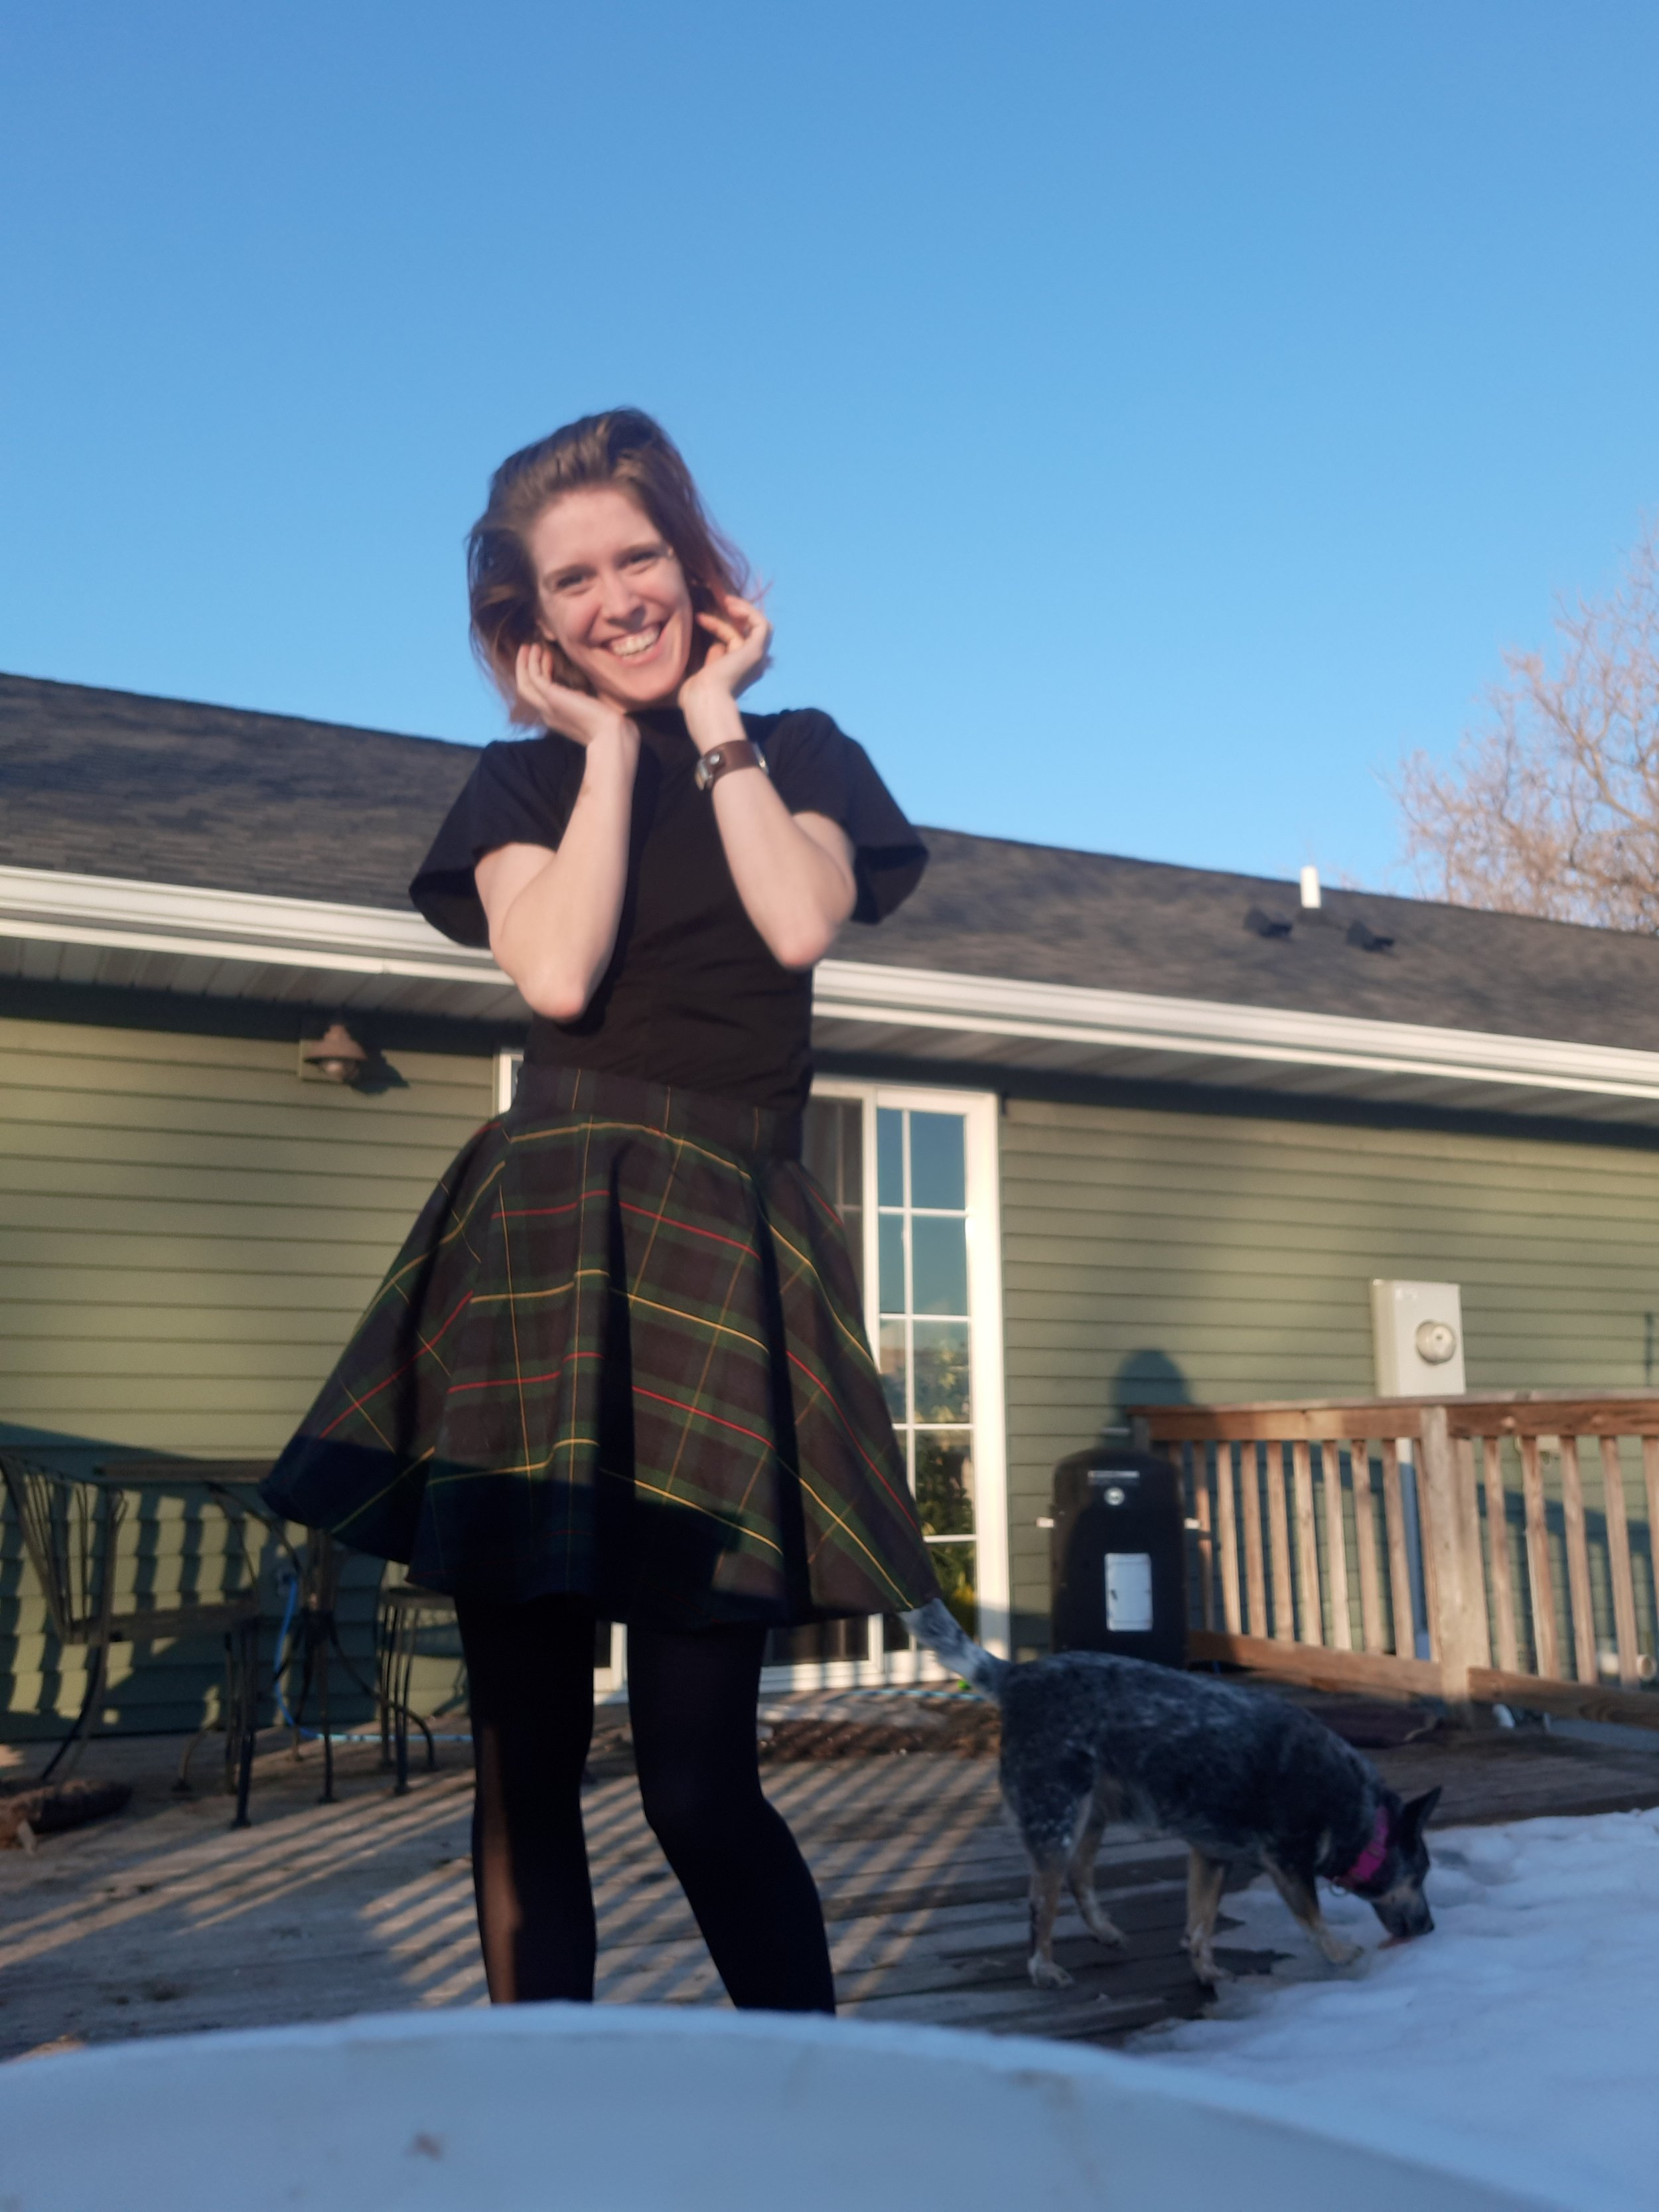 Photo features a shirt that I made from an old pair of pants I pulled out of my mom's thrift store giveaway pile.